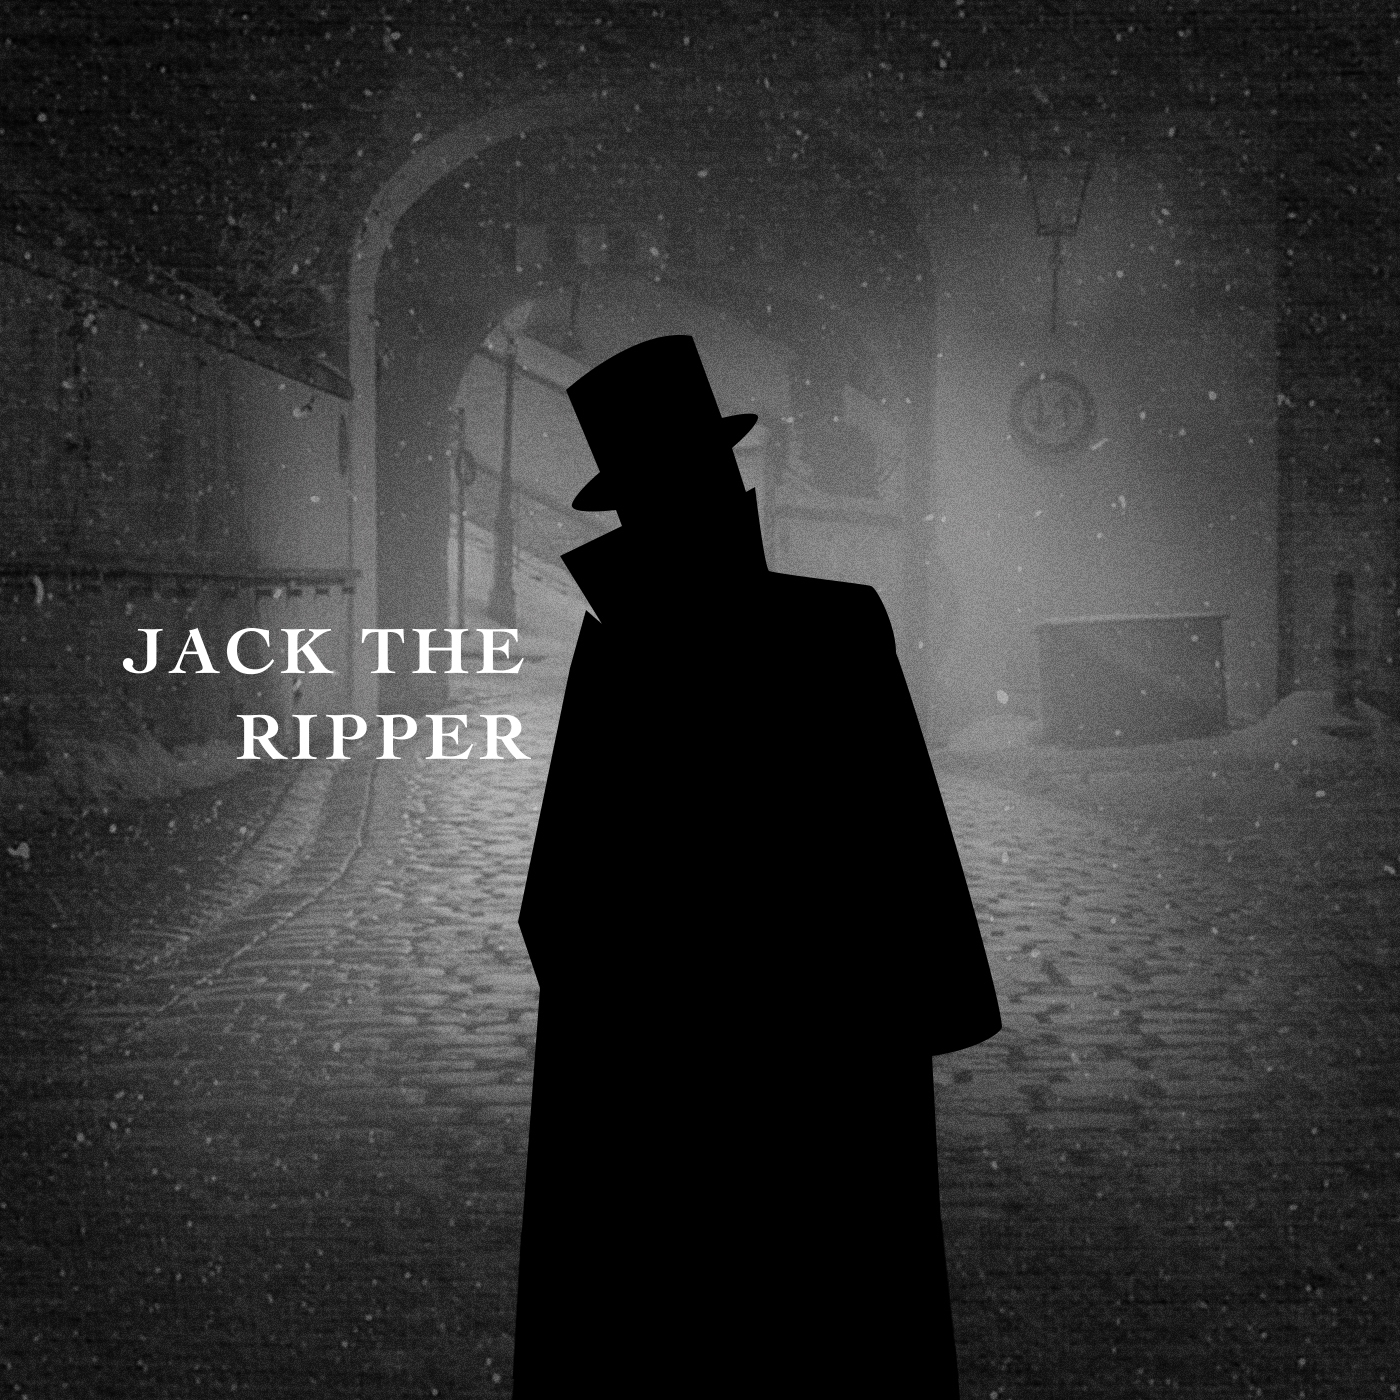 jack the ripper uncatchable by the police